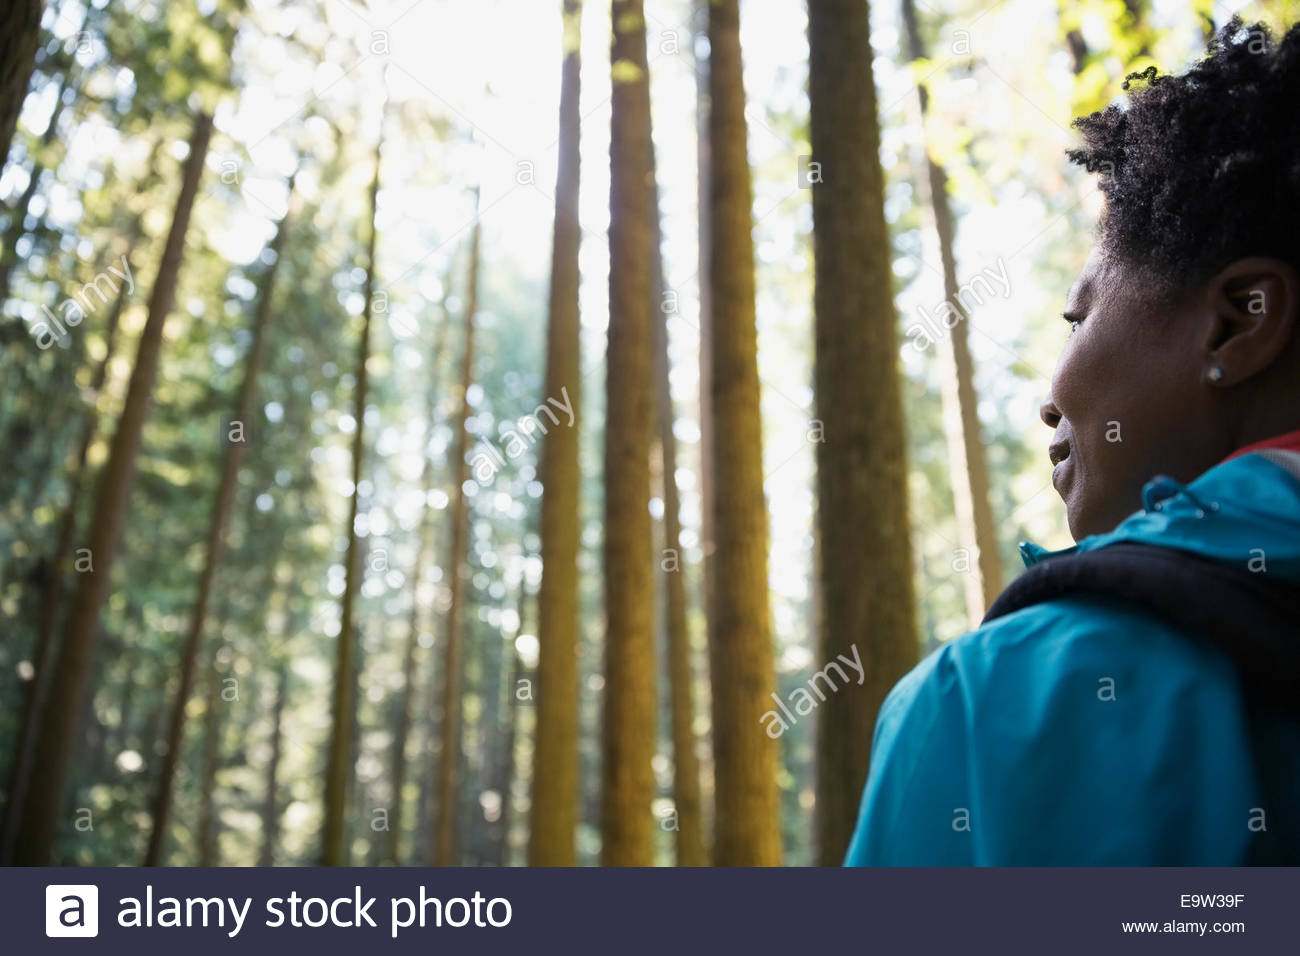 Pensive woman looking at trees in woods Stock Photo